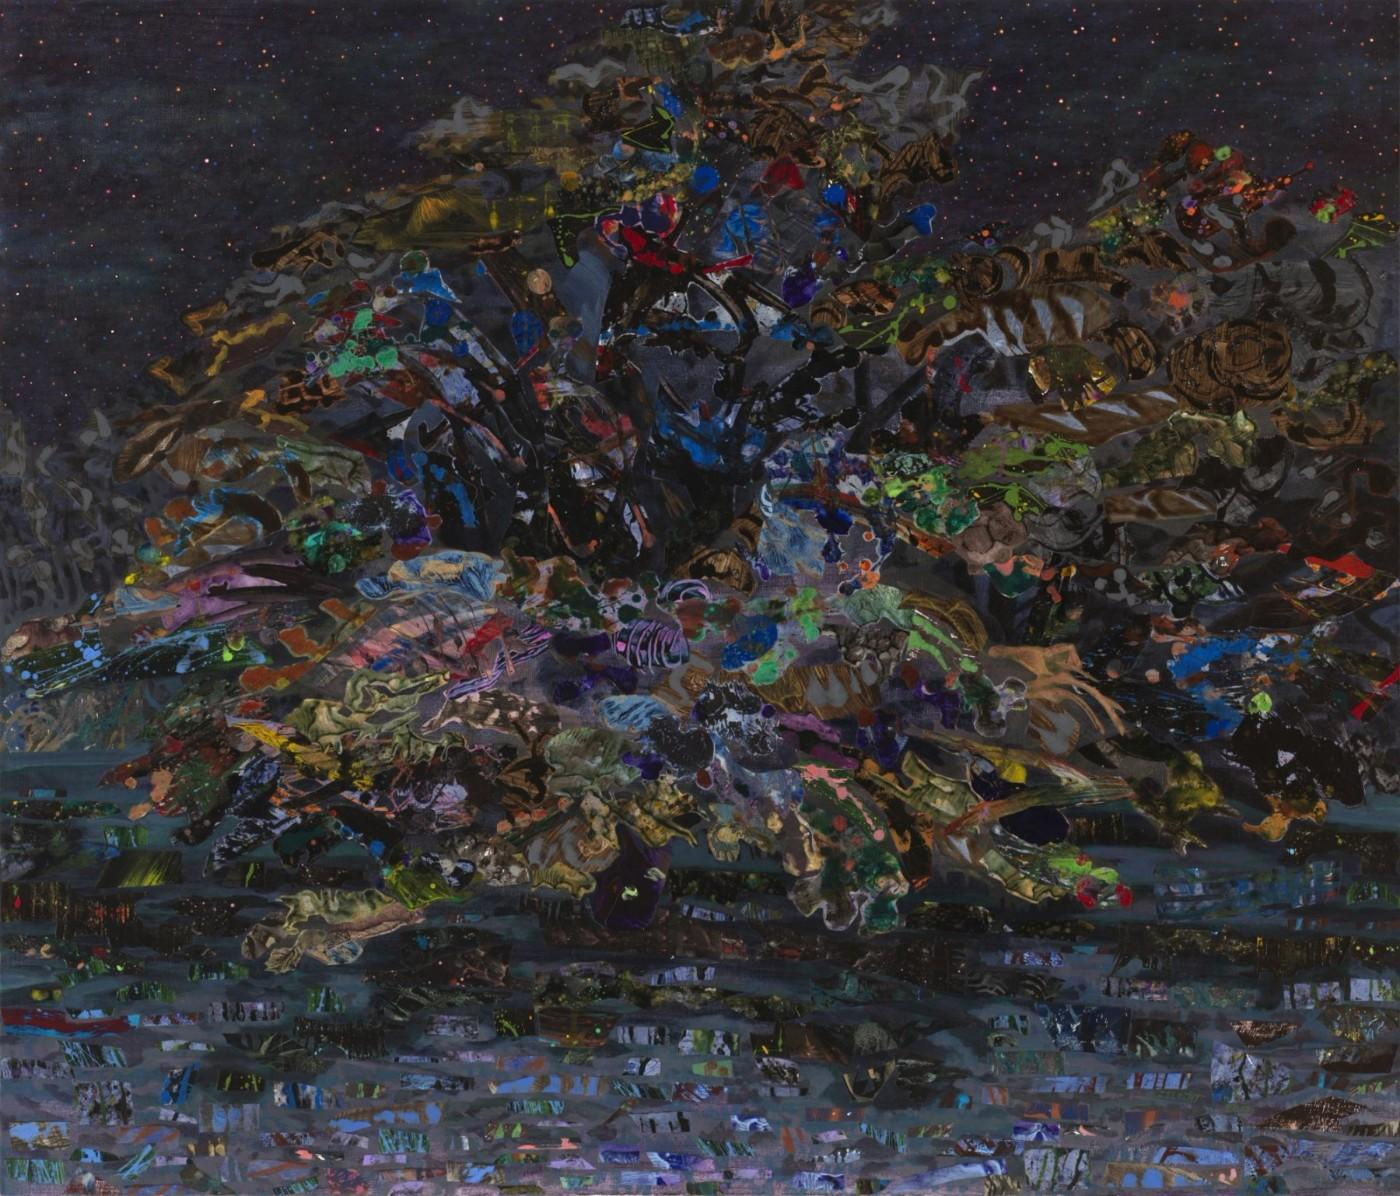 Mary Lou Zelazny, The Blackeyed Tree #2, 2017